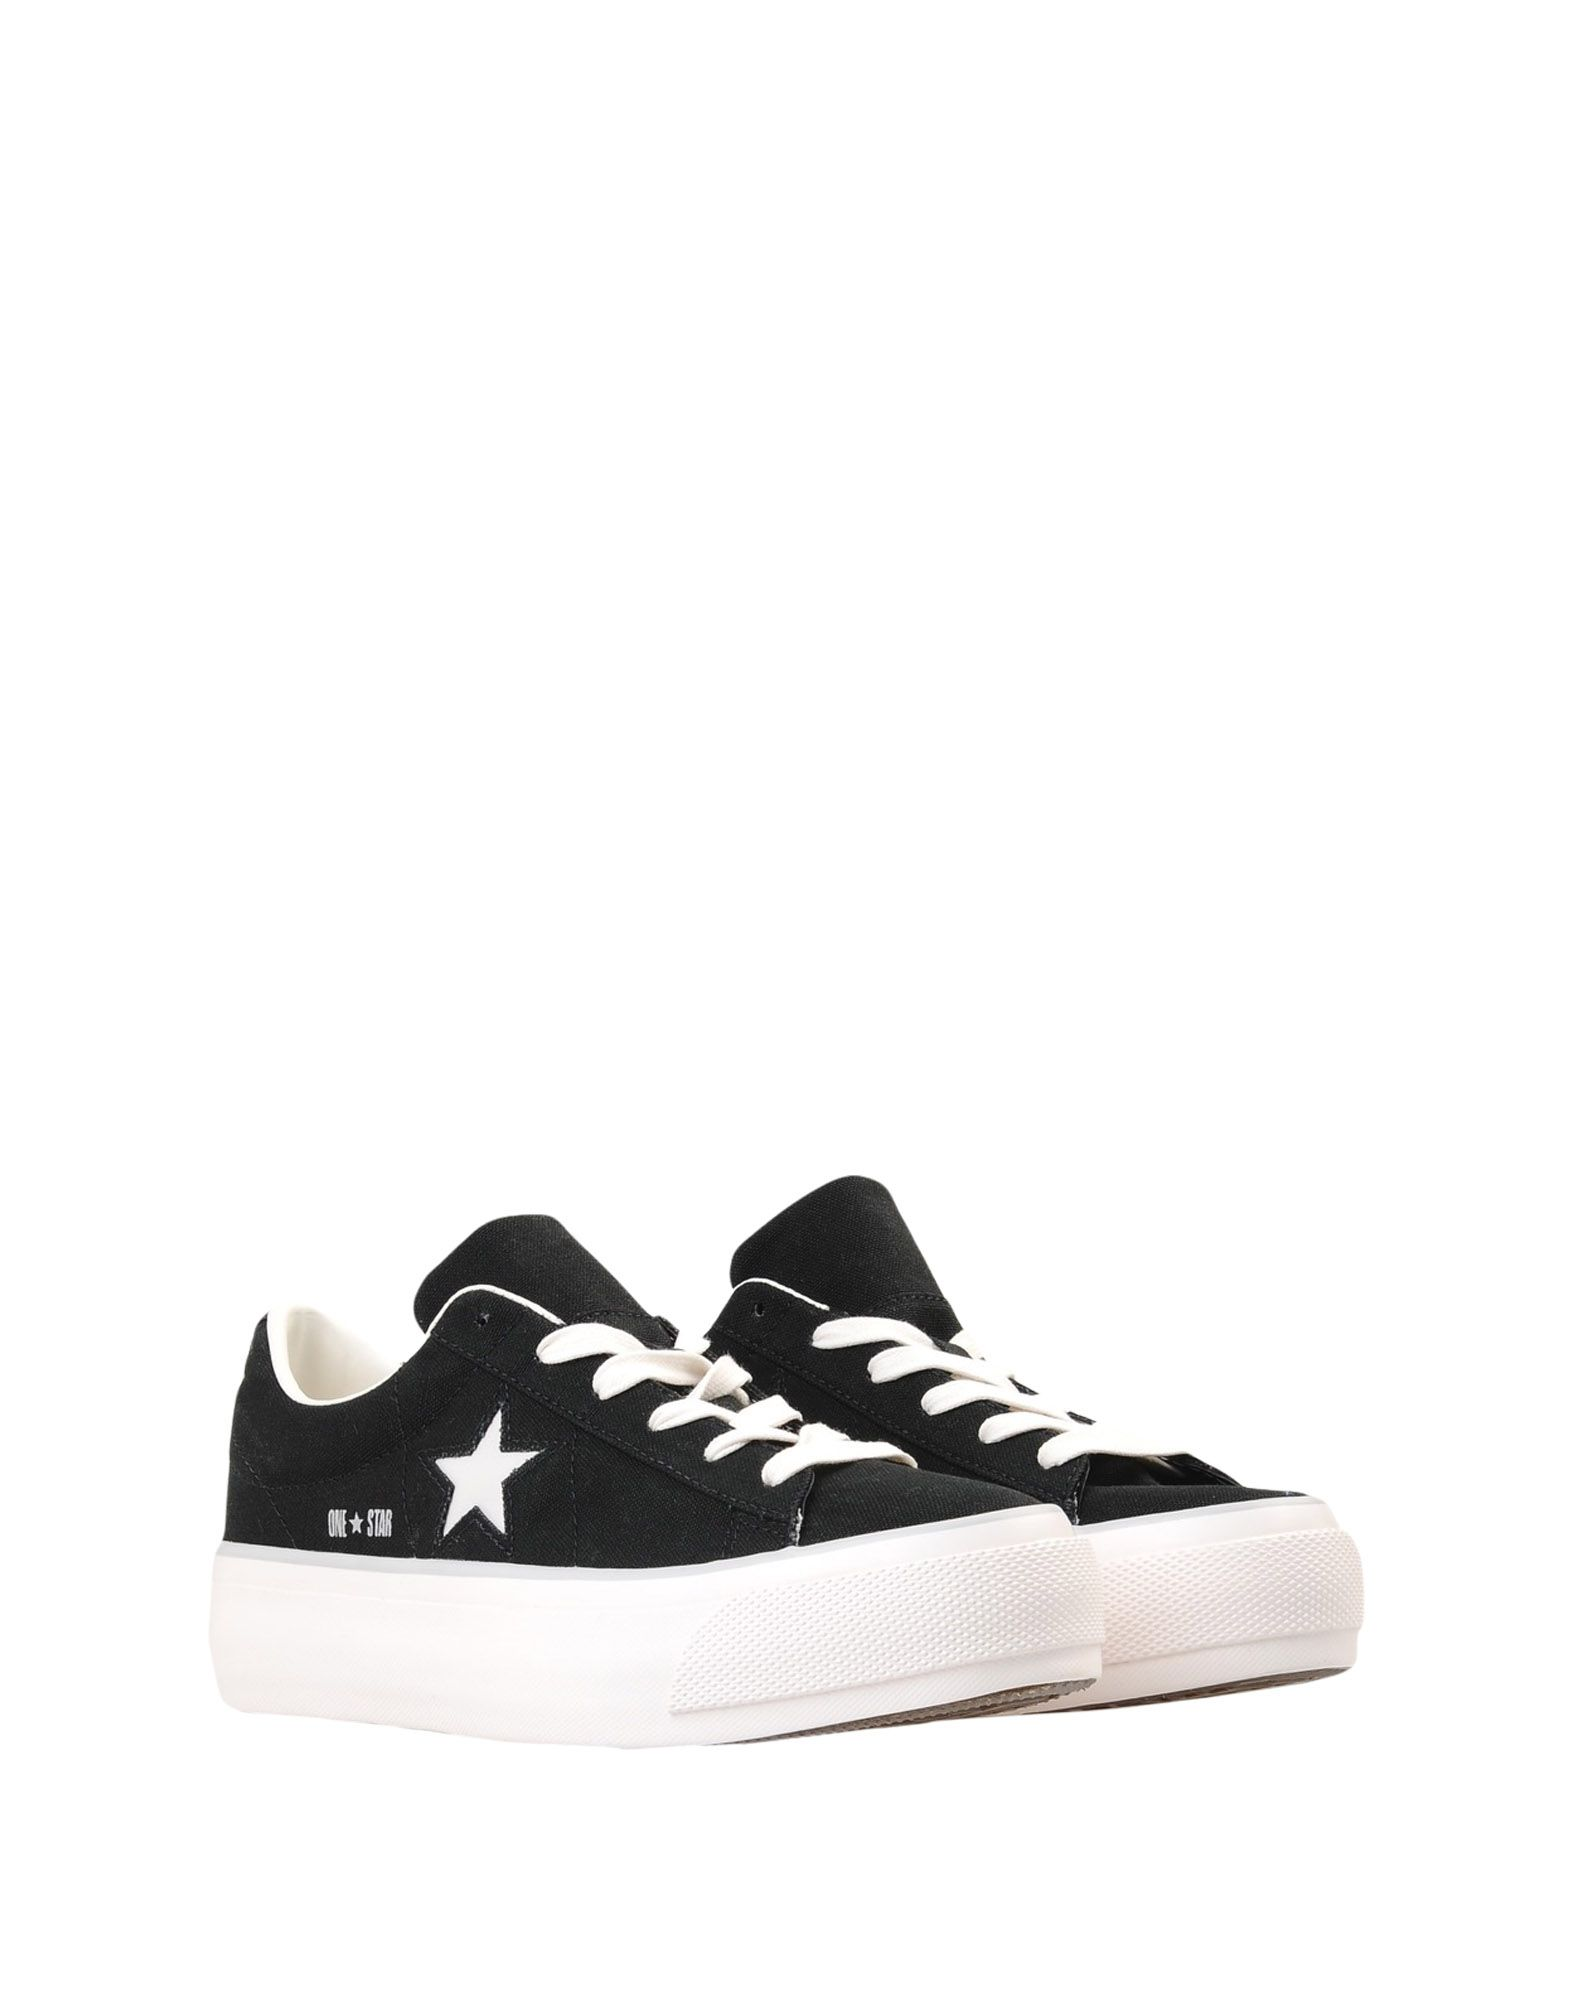 Sneakers Converse All Star One Star Platform Ox Glitter Canvas - Femme - Sneakers Converse All Star sur